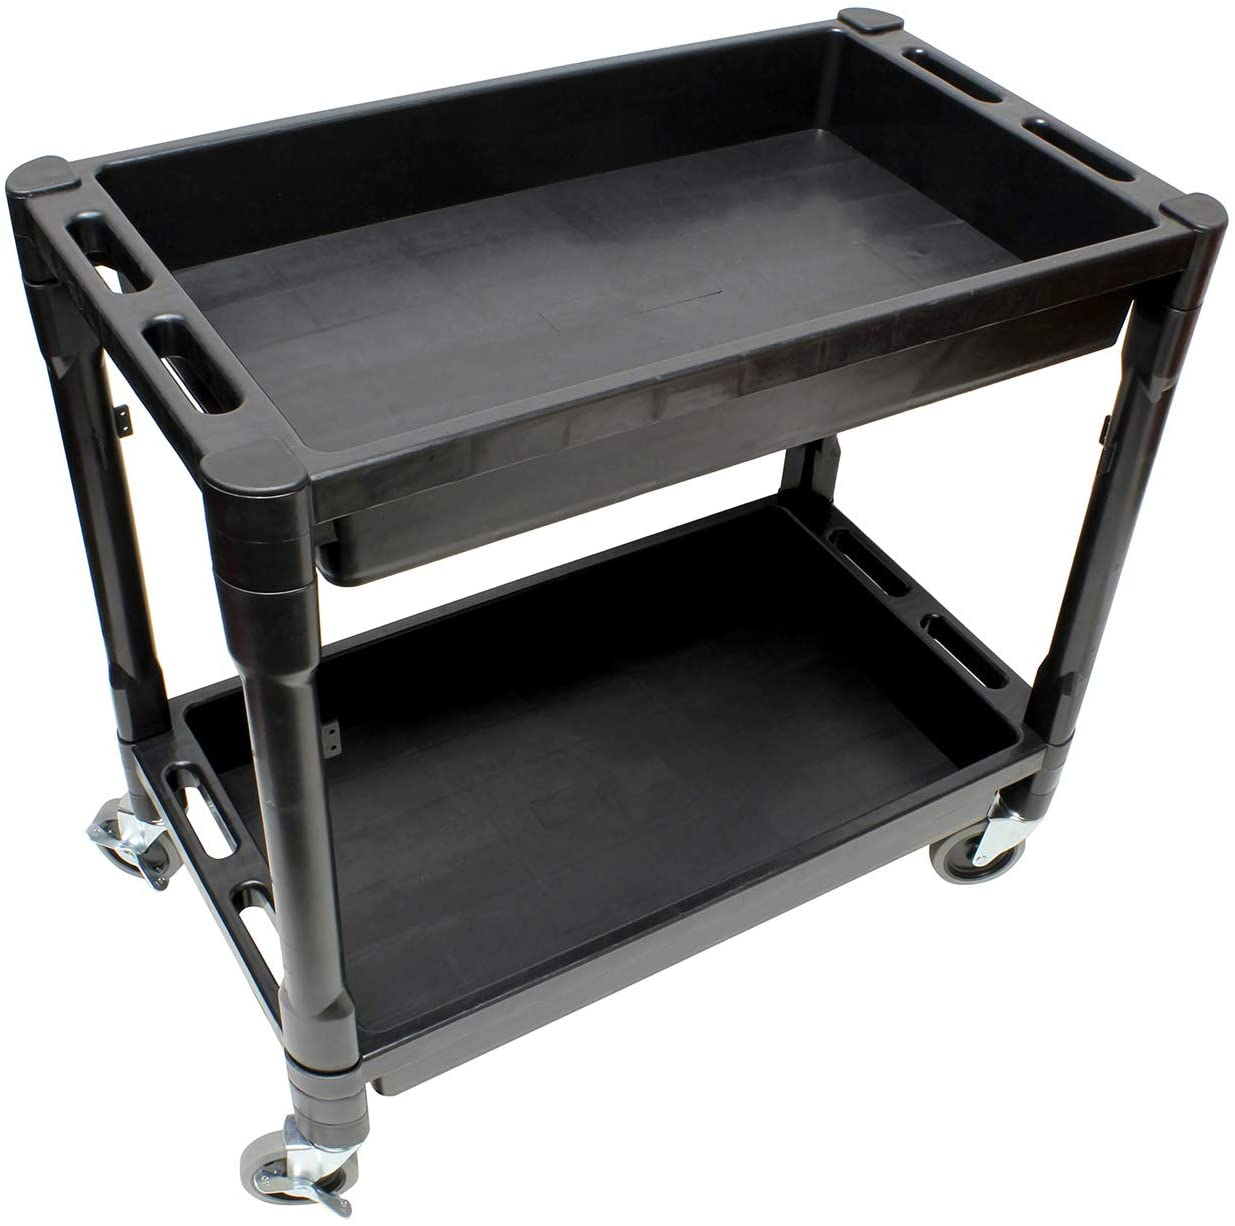 BISupply Plastic Utility Rolling Cart with Shelves Rolling Tool Cart on Wheels, Utility Service Cart Plastic Push Cart